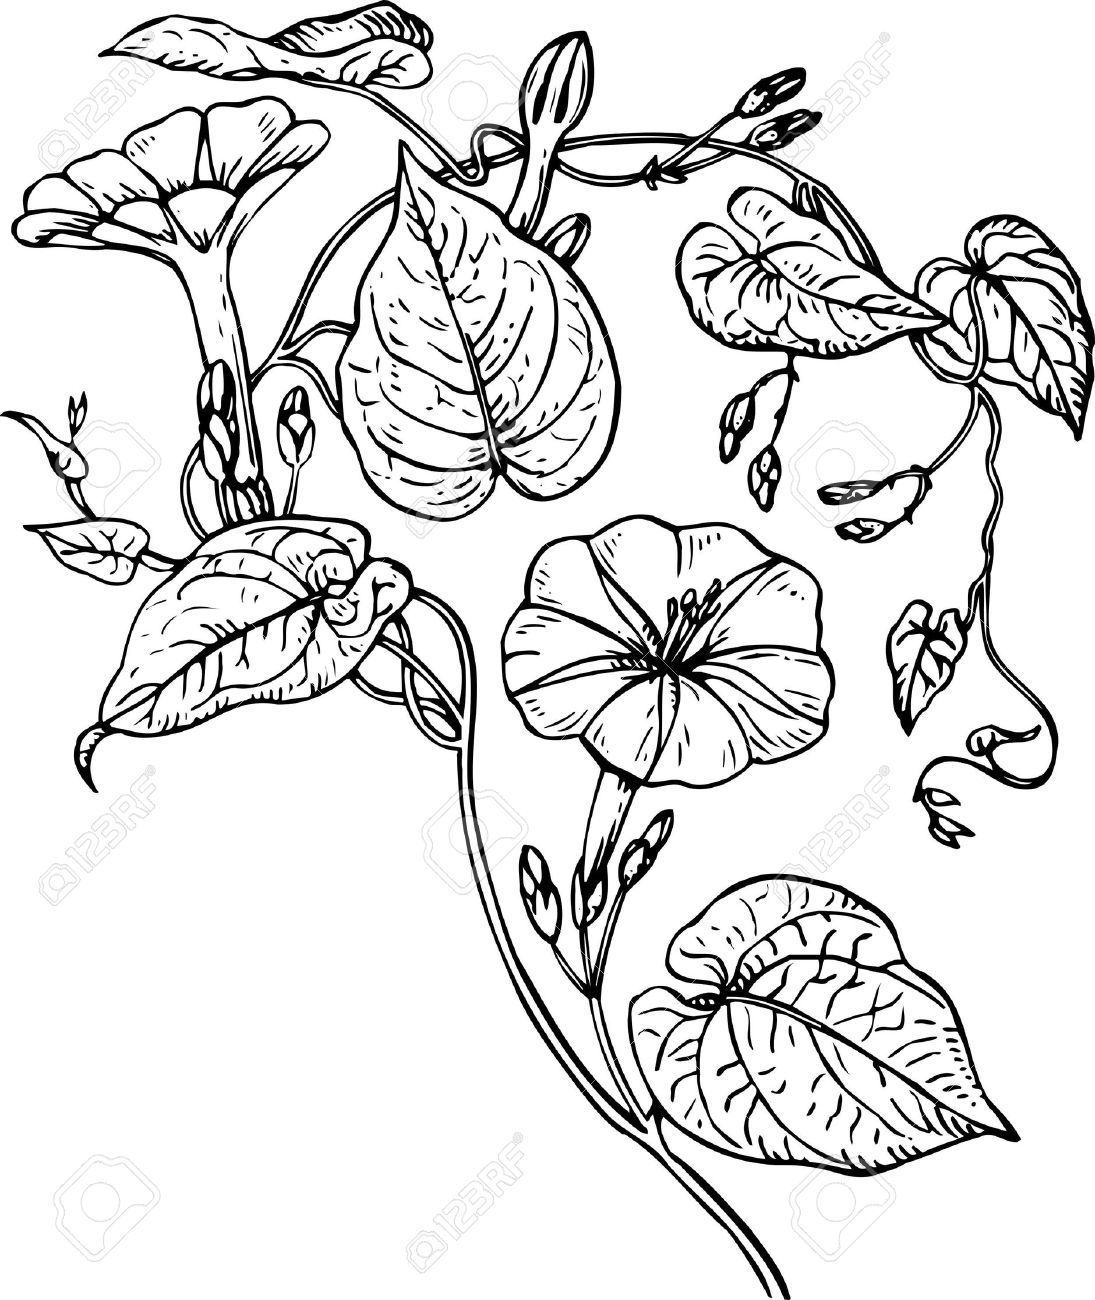 Lace Morning Glories Google Search Vine Drawing Flower Drawing Moon Flower